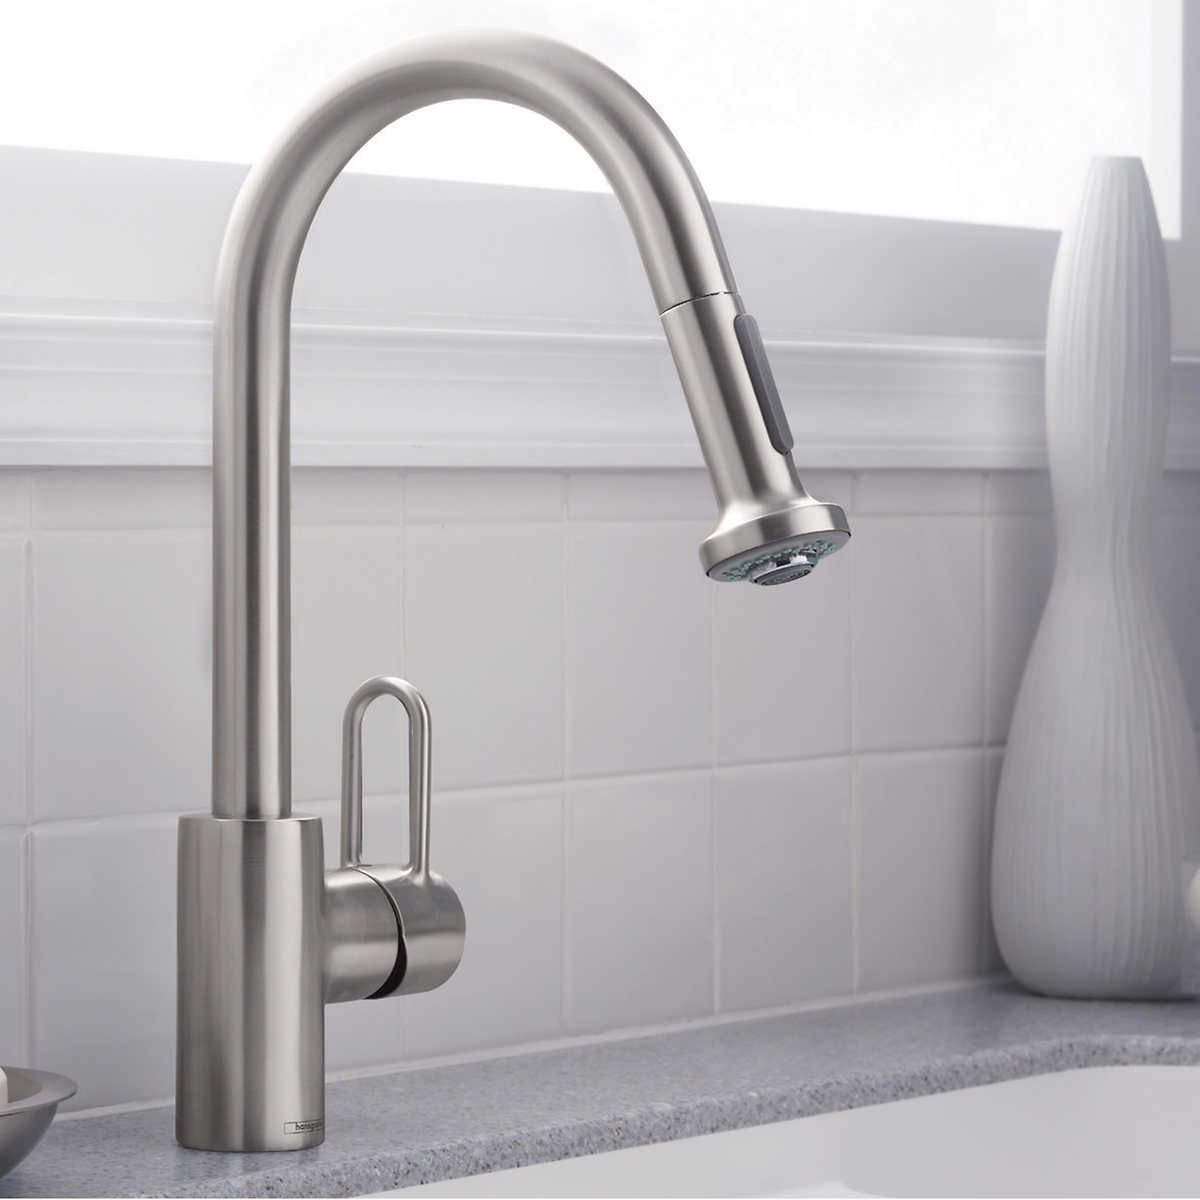 Cool New Hansgrohe Allegro E Kitchen Faucet 52 On Interior Designing Home Ideas With